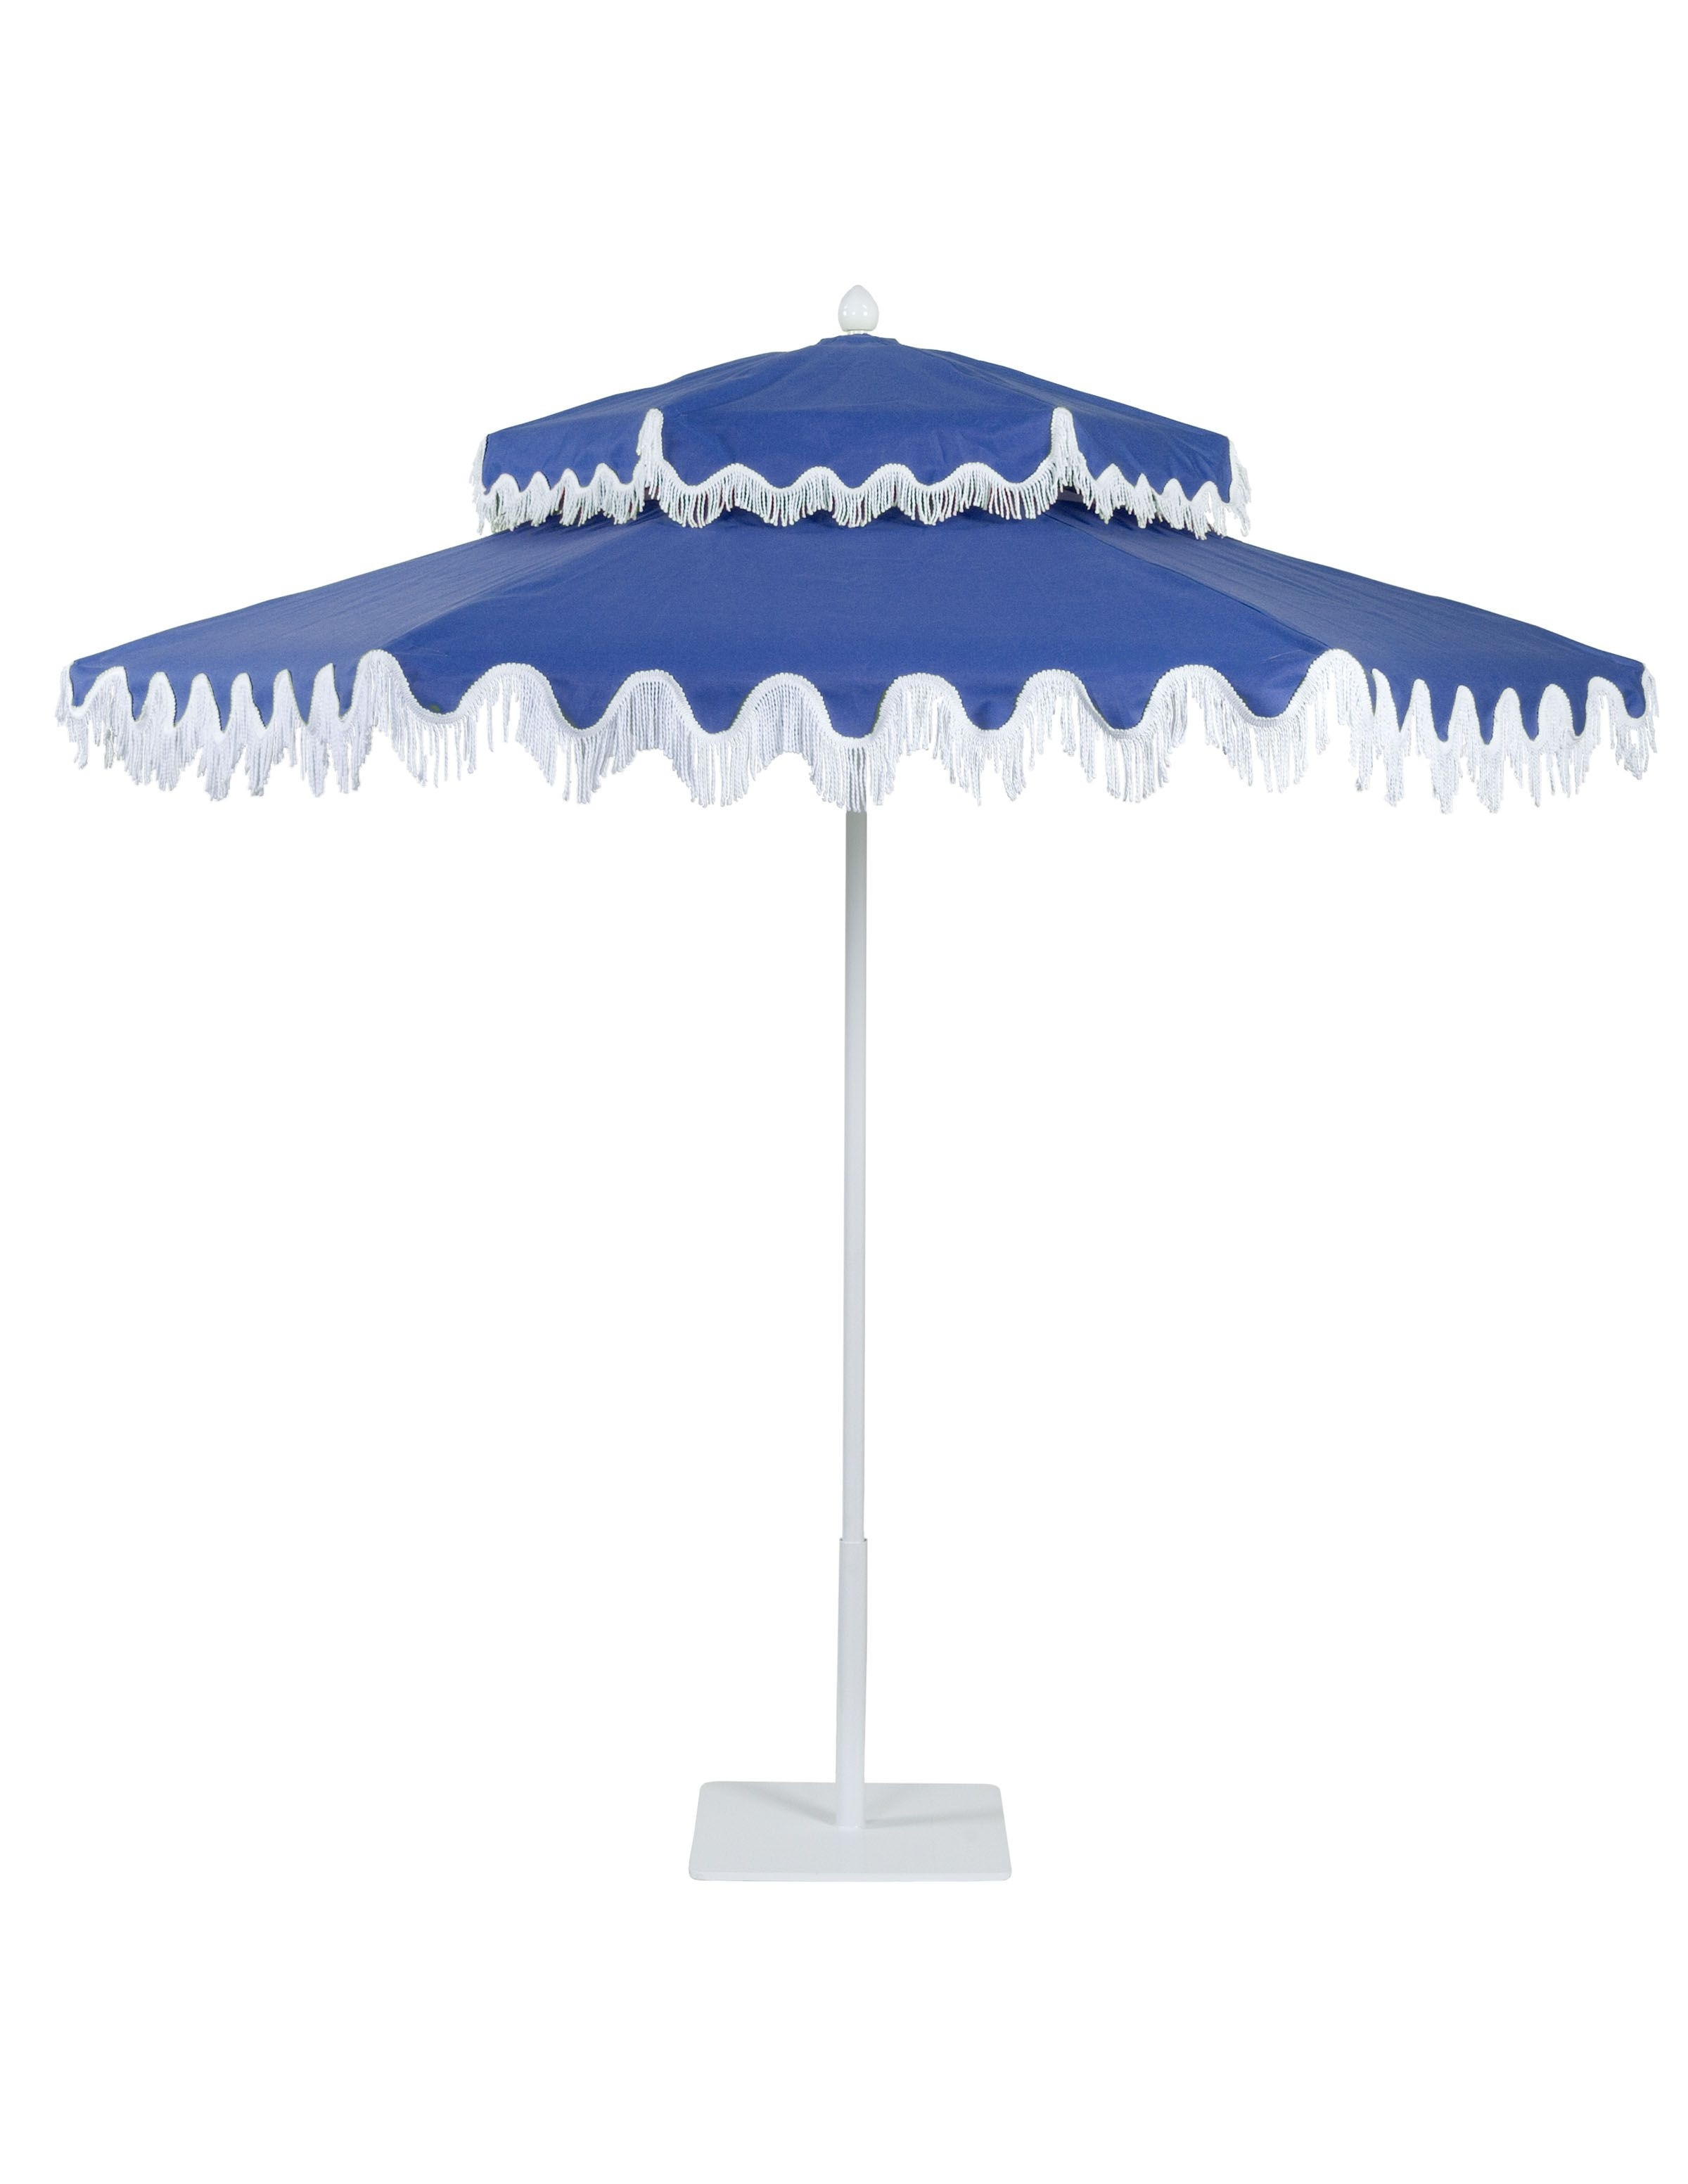 Patio Umbrellas With Fringe Pertaining To Popular 44 Patio Umbrella With Fringe Hm5K – Mcnamaralaw (Gallery 8 of 20)